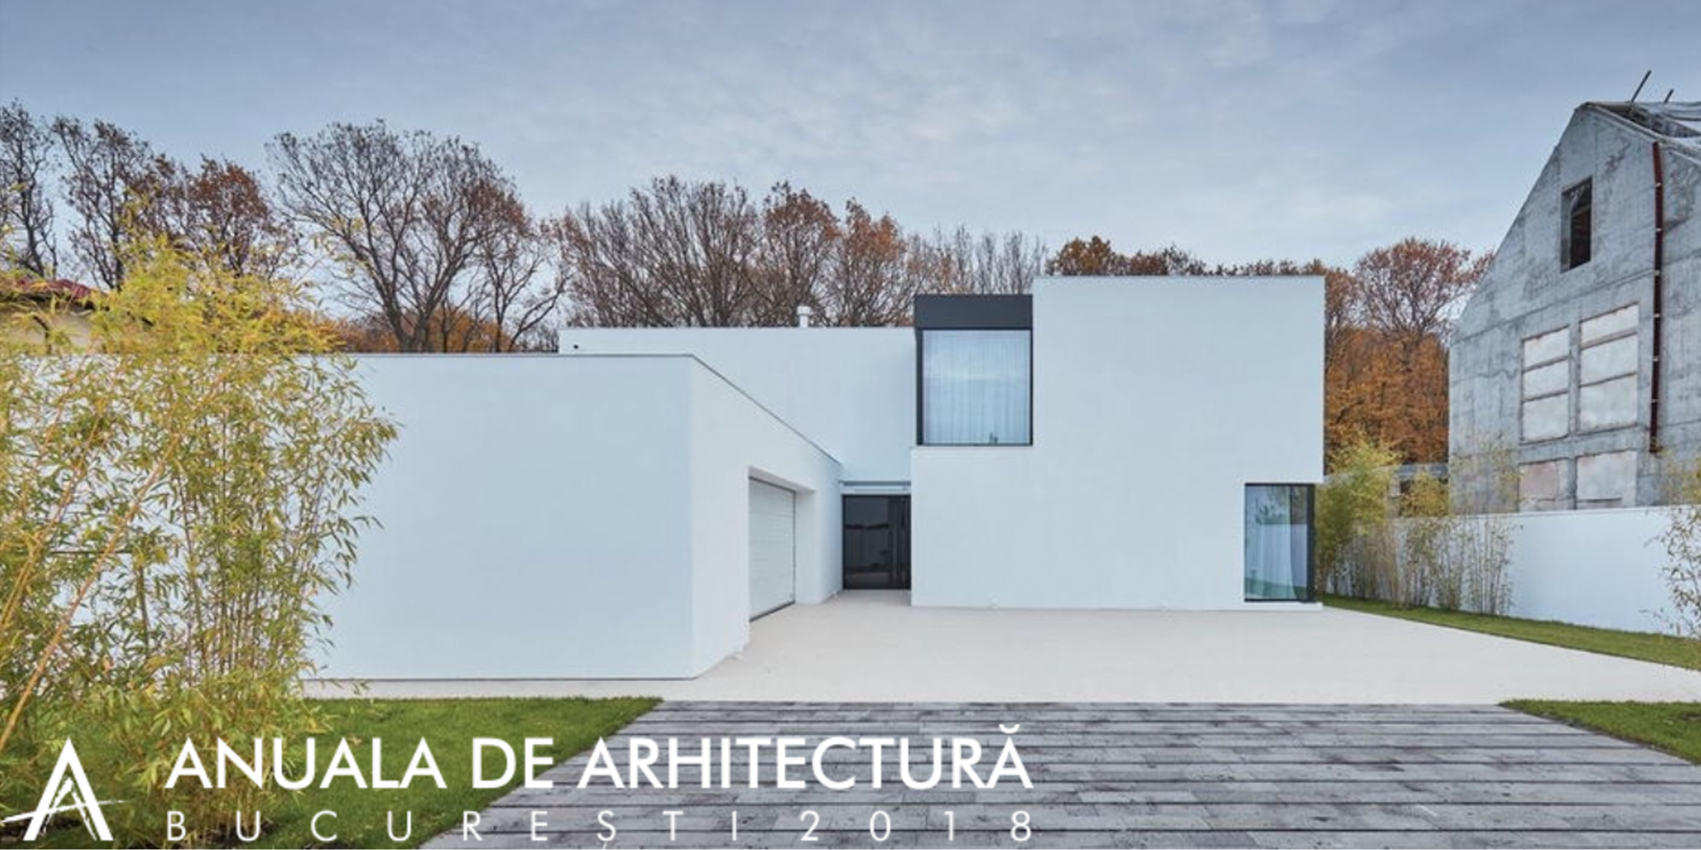 STUDIO HOUSE presented and nominated at The Bucharest Architecture Annual / Anuala de Arhitectură București 2018 in the Residential Architecture category - Studio House project was presented in AAB 2018 exhibition and it received a nomination for the best project in the Residencial Architecture category.More details here:https://www.anuala.ro/2018/And here:http://www.anuala.ro/proiecte/2018/204/